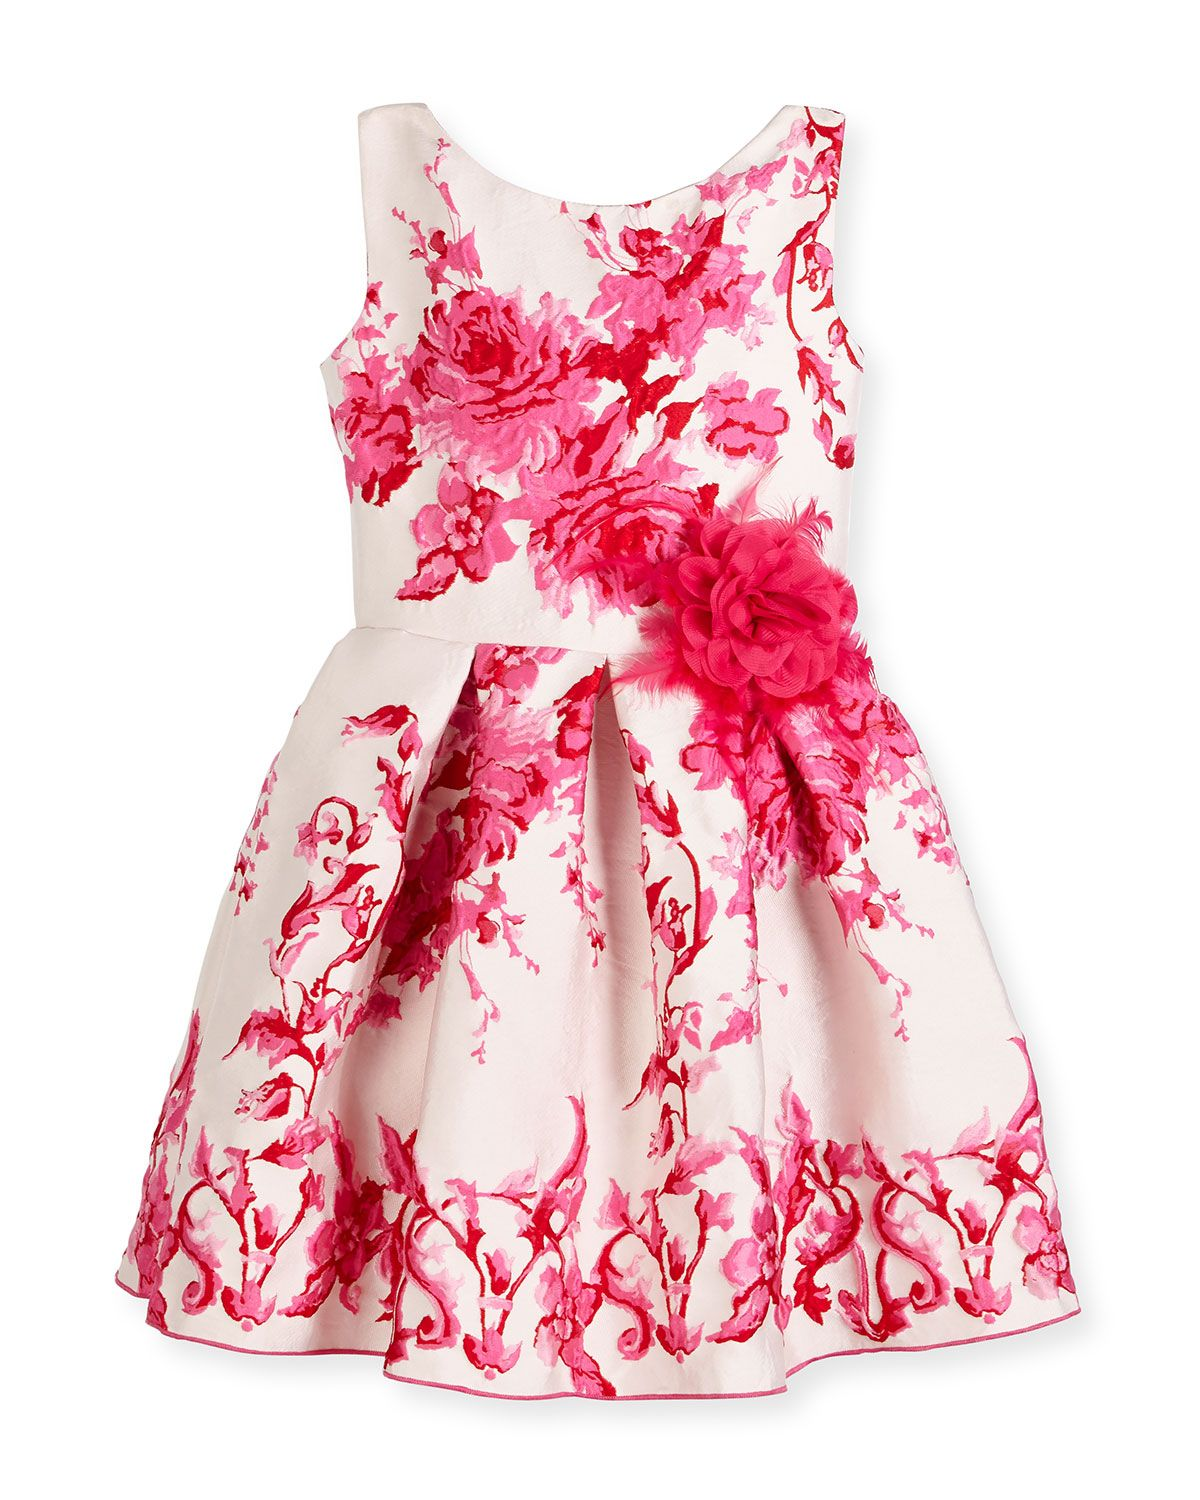 Sleeveless Pleated Floral Jacquard Dress, Pink, Size 7-16, Girl\'s ...